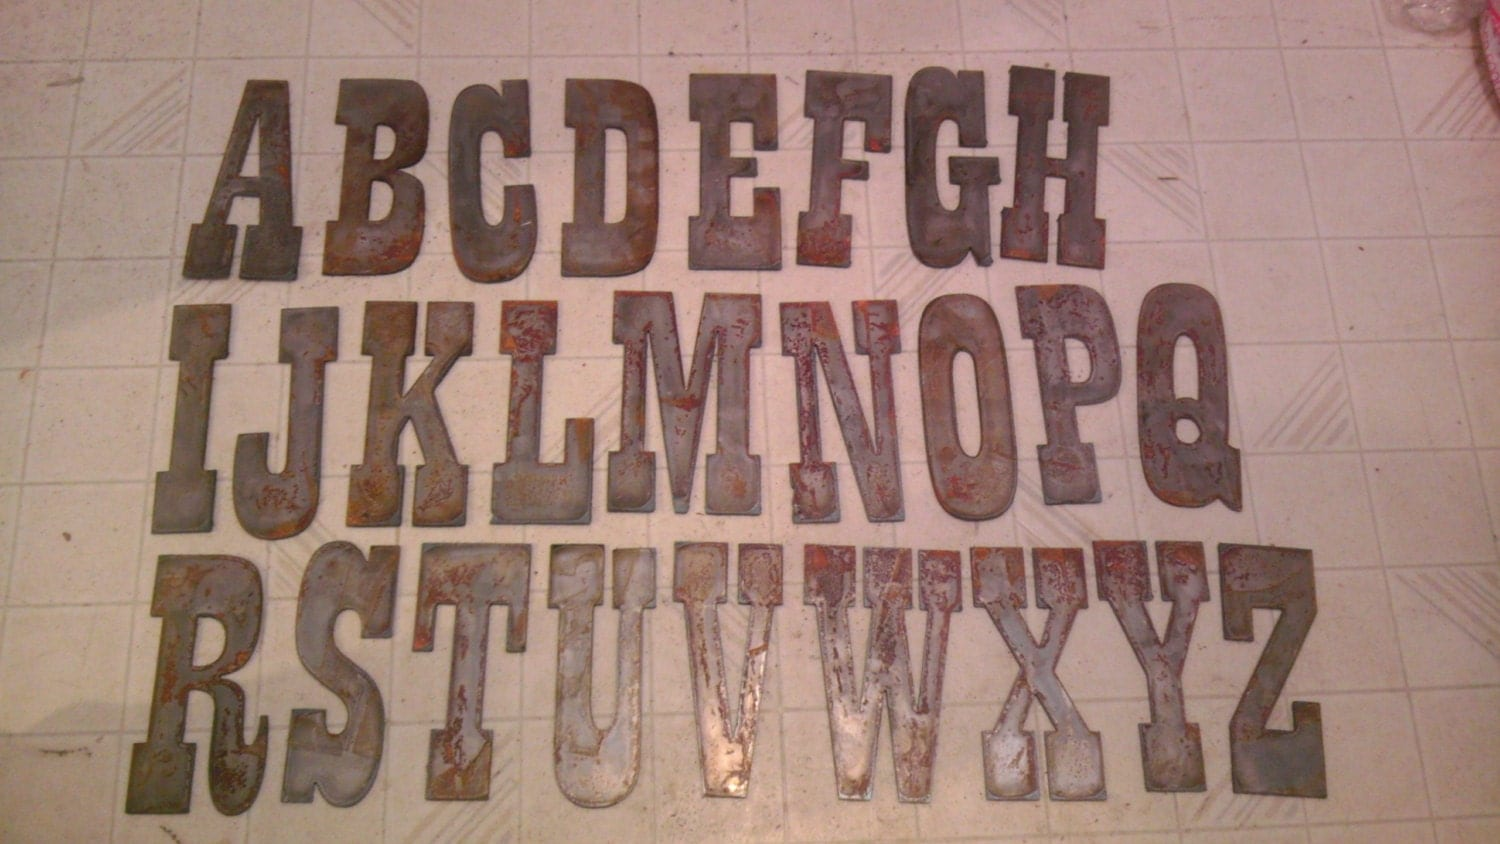 6 Inch Metal Letters 6 Inch Letters Alphabet Per Letter Rusty Vintage Western Style